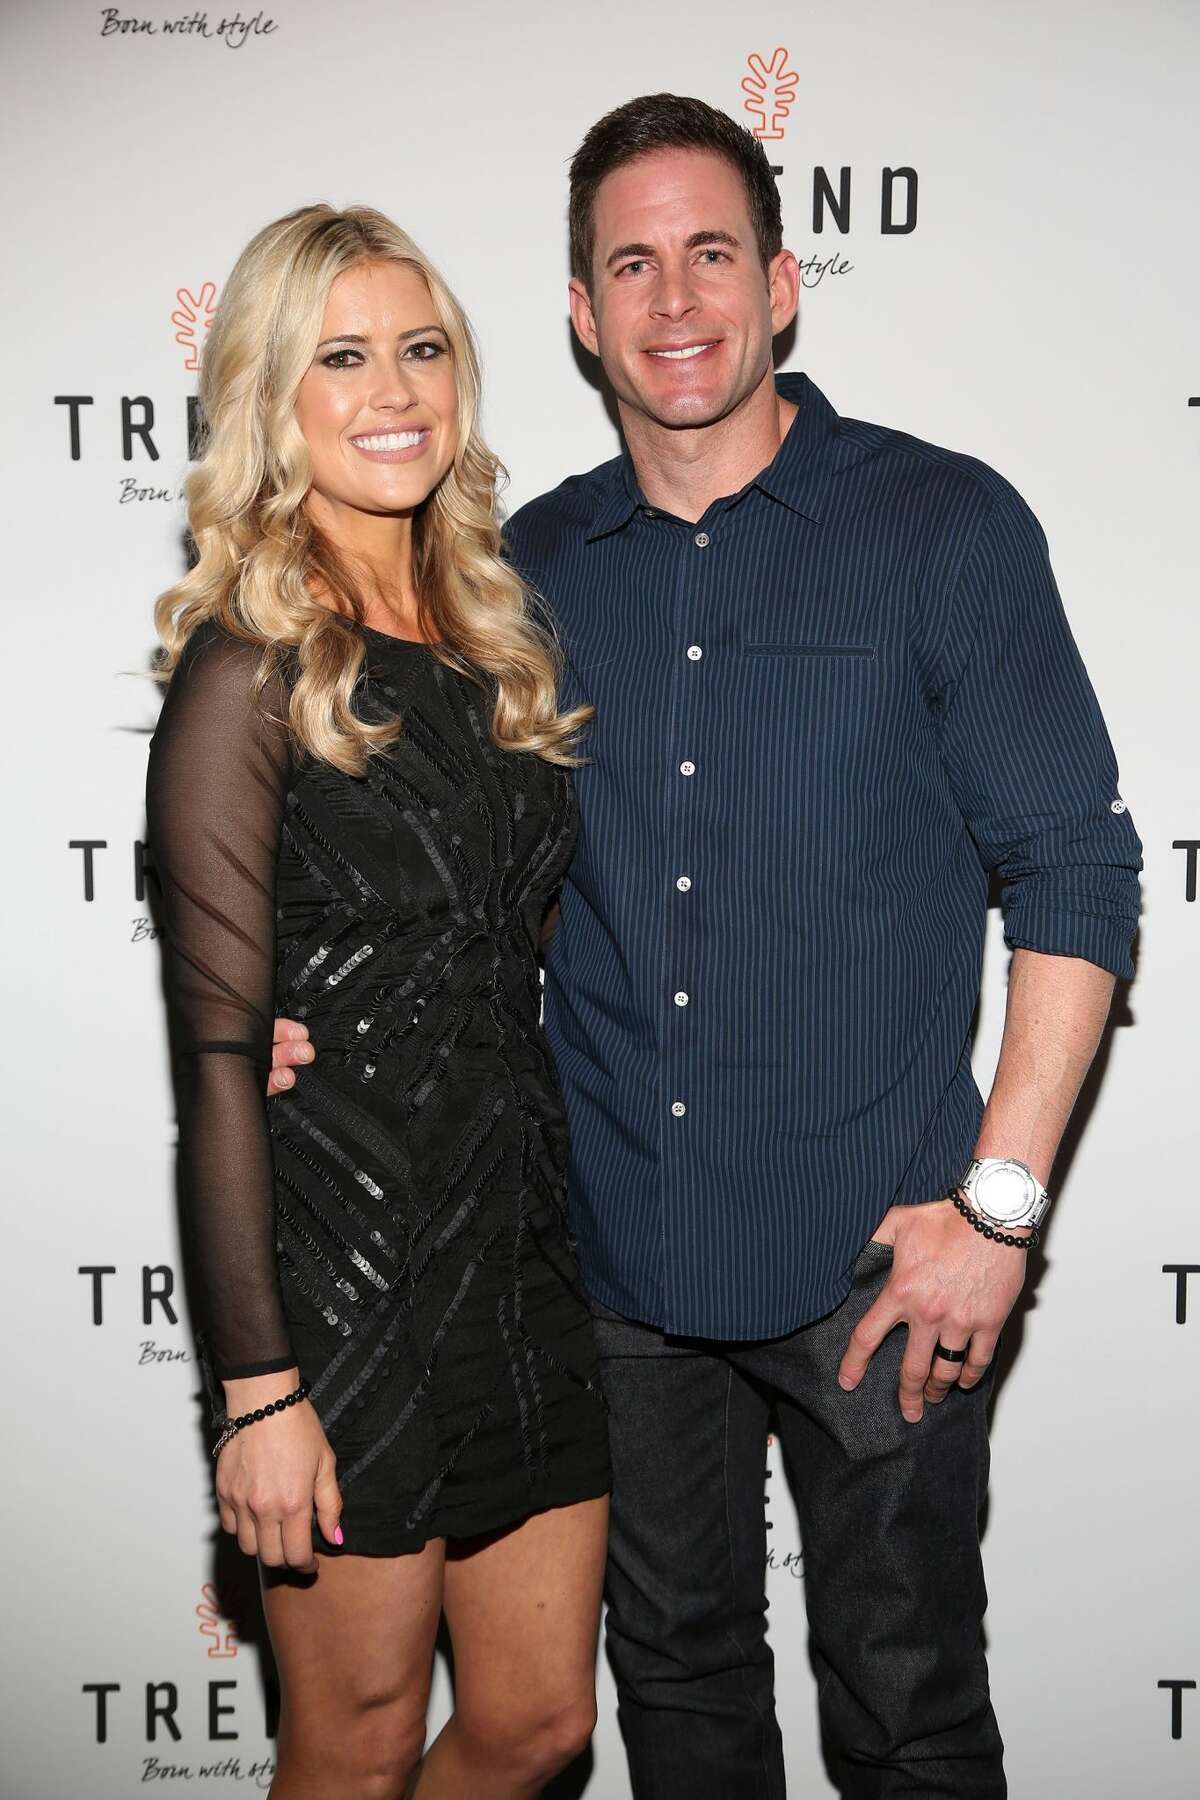 Reality TV couples that ended up in Splitsville Couple: Christina El Moussa and Tarek El Moussa Relationship: Married (2009) (Tarek El Moussa filed for divorce in Jan. 2017) Reality Show: HGTV's